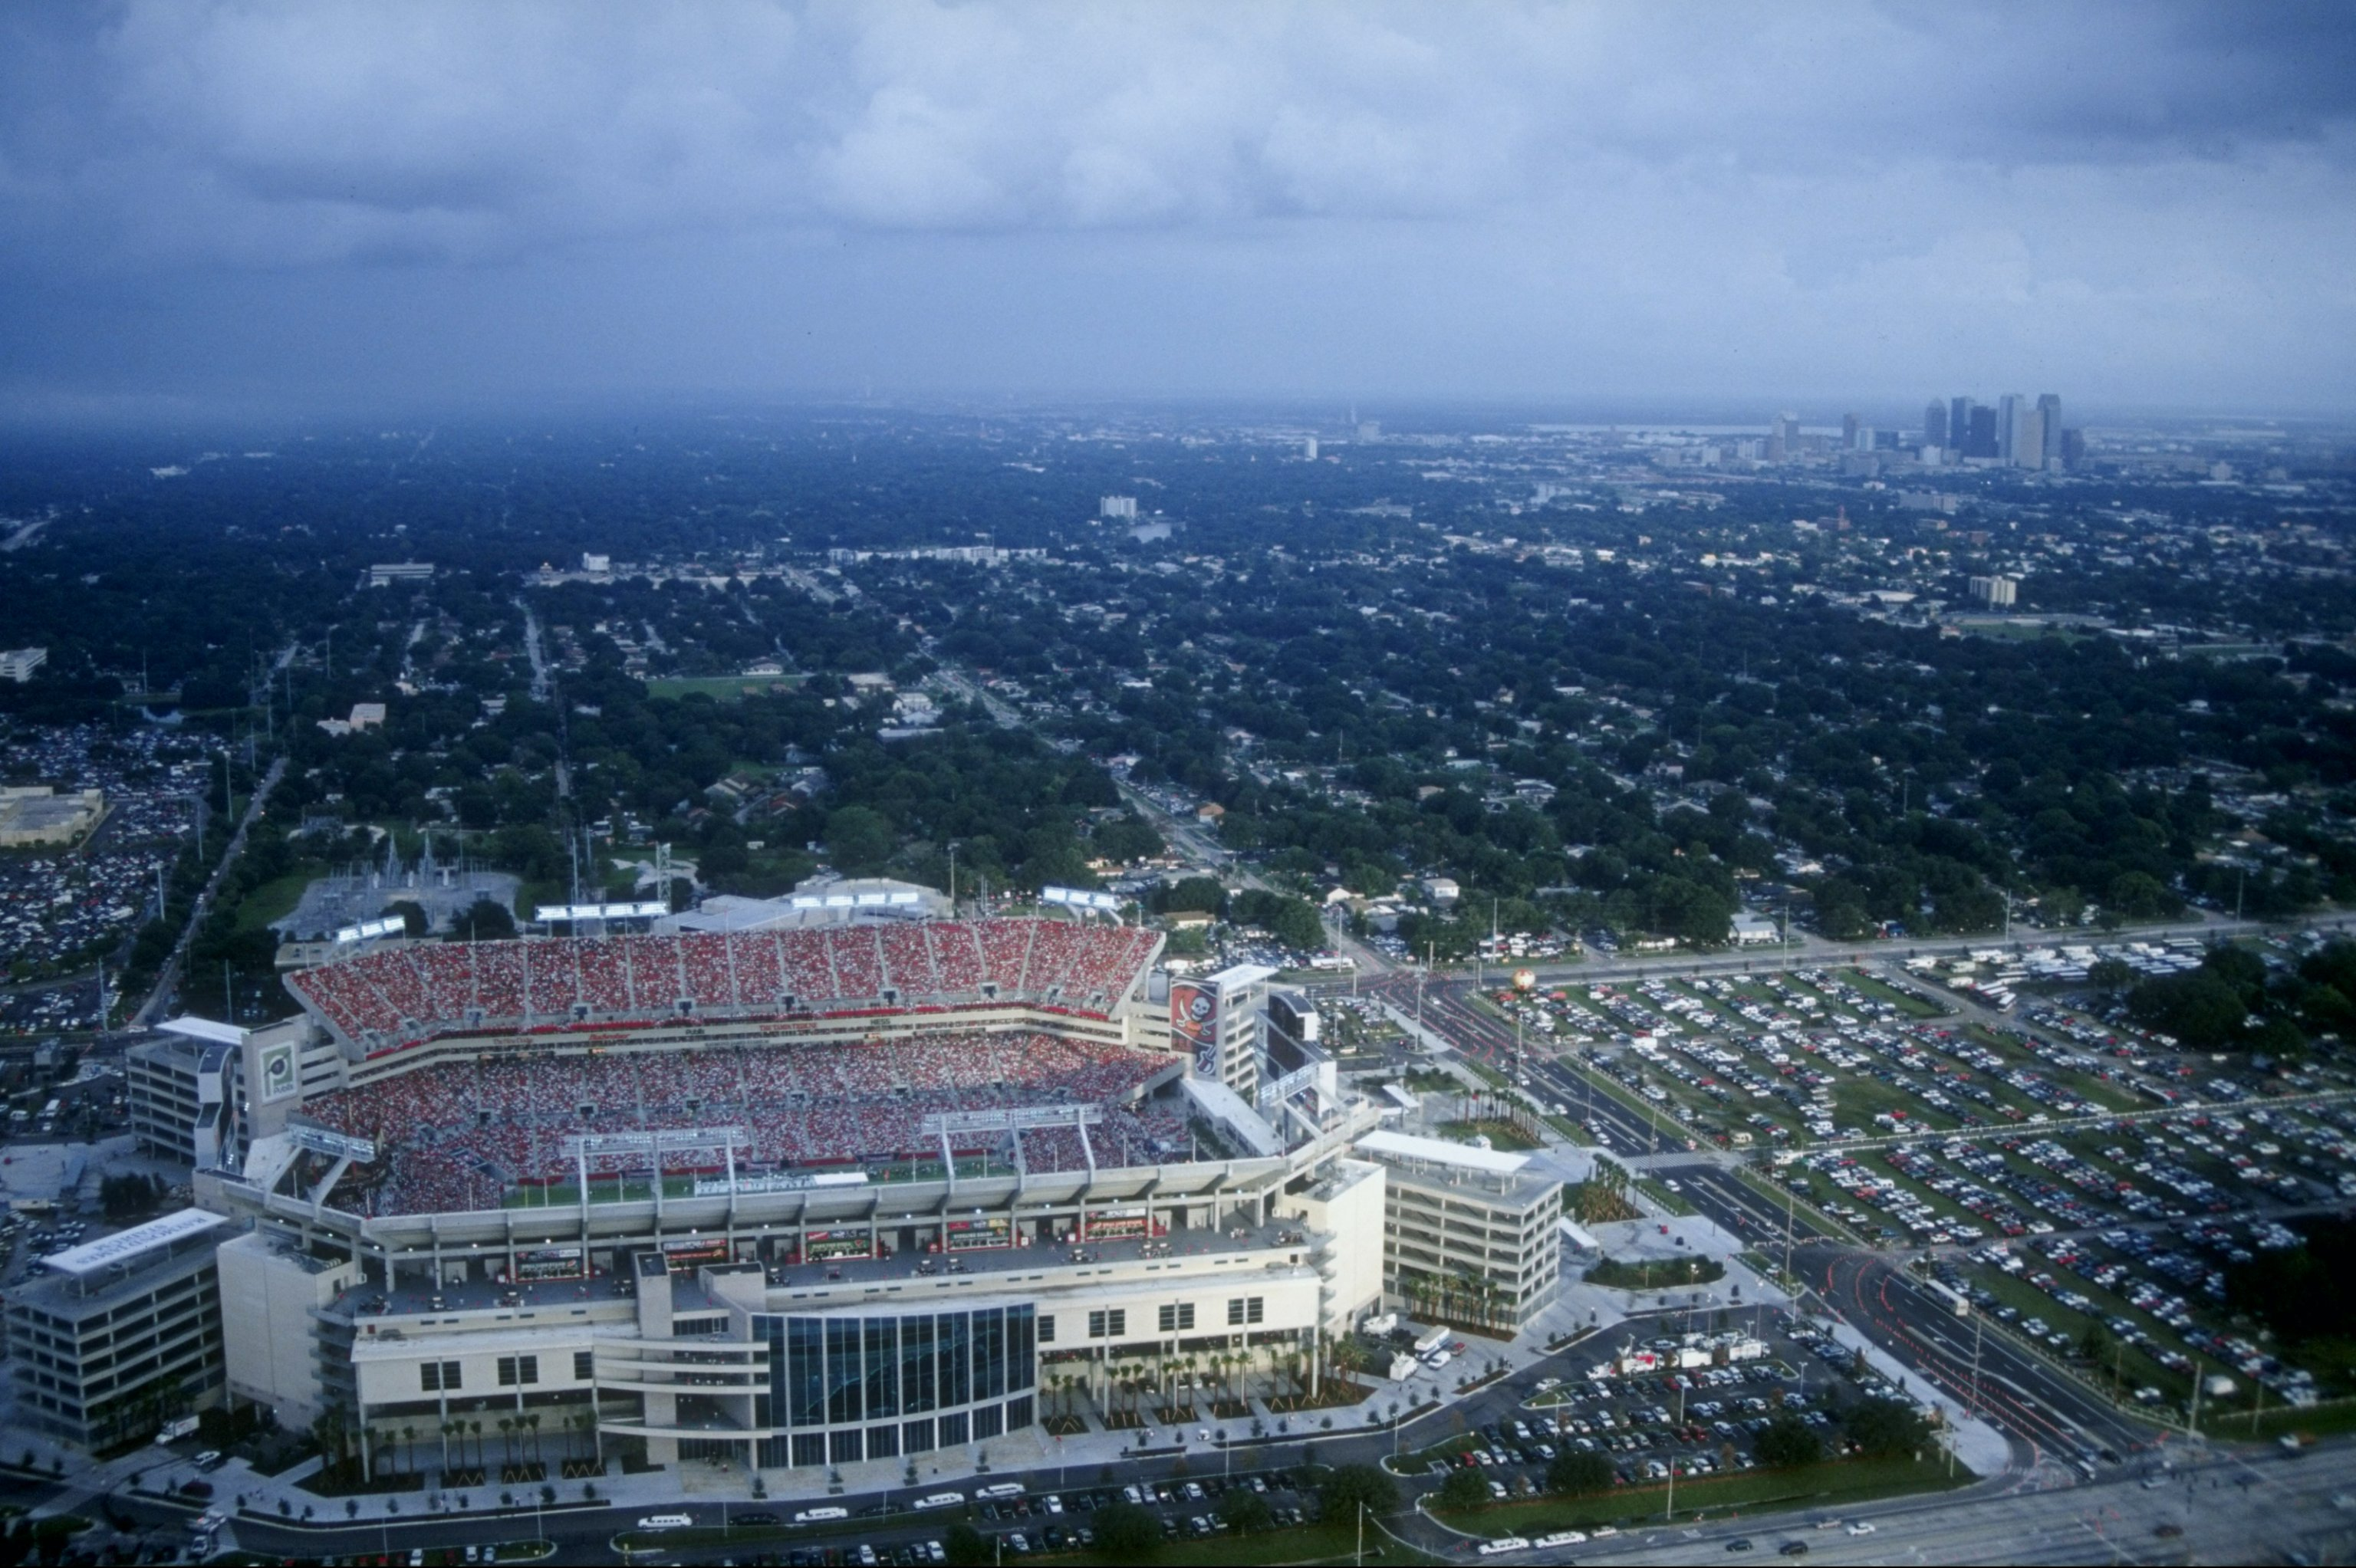 The Tampa Bay Buccaneers took up residence here in 1998 after Malcolm Glazer's purchase of the franchise.